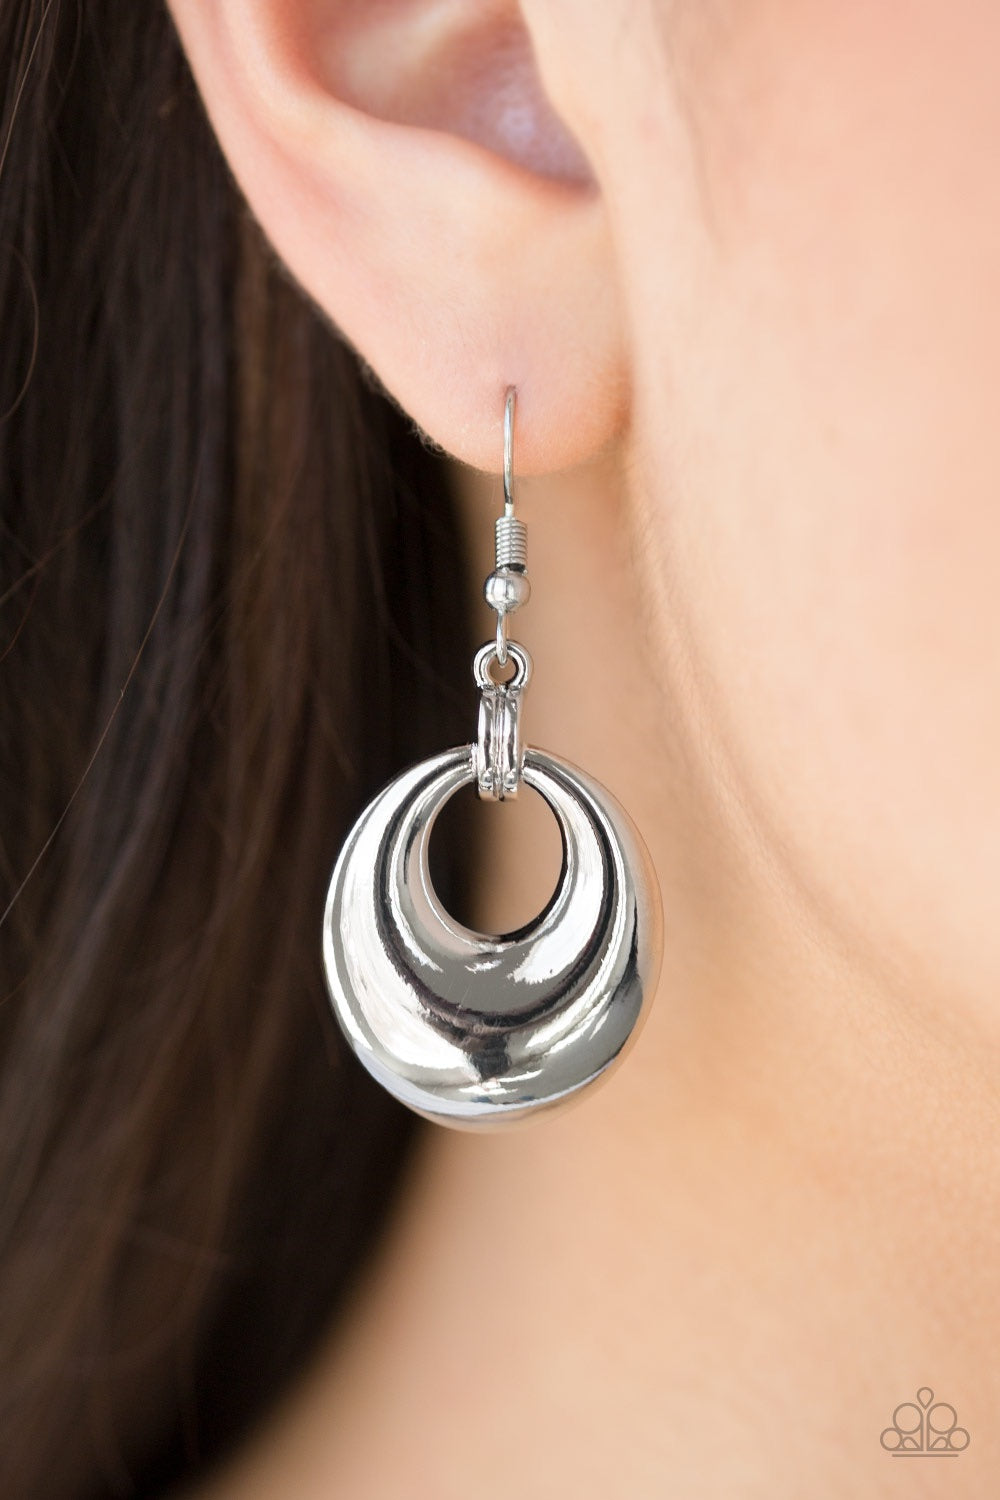 Paparazzi Jewelry Earrings In The BRIGHT Place At The BRIGHT Time - Silver